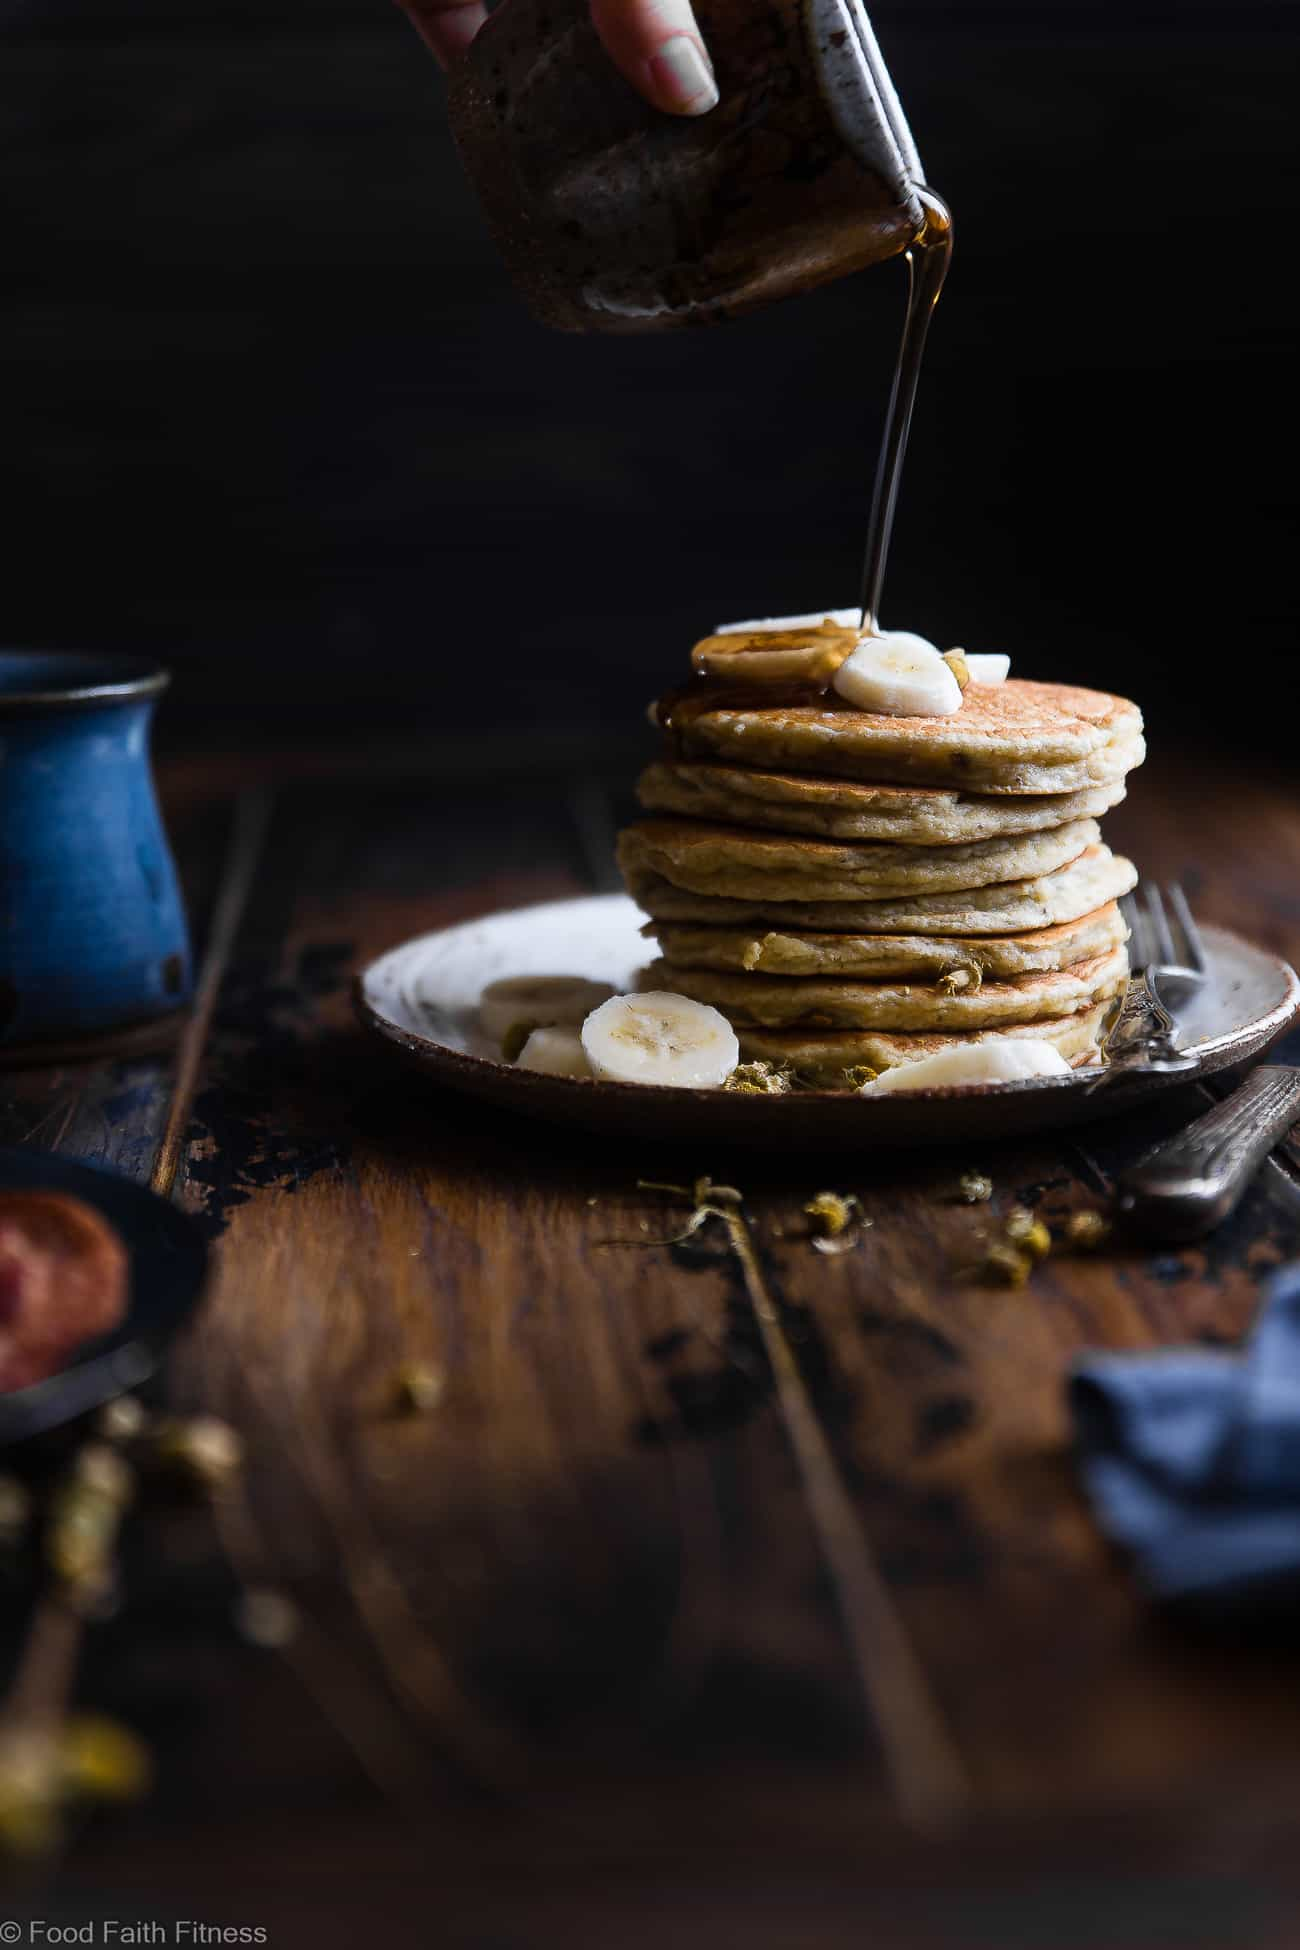 Easy Paleo Banana Pancakes with Coconut Flour -Thesequick and easy banana paleo pancakesare naturally sweetened, gluten, grain and dairy free and SO light and fluffy! The perfect healthy start to your day or weekend breakfast! | Foodfaithfitness.com | @FoodFaithFit